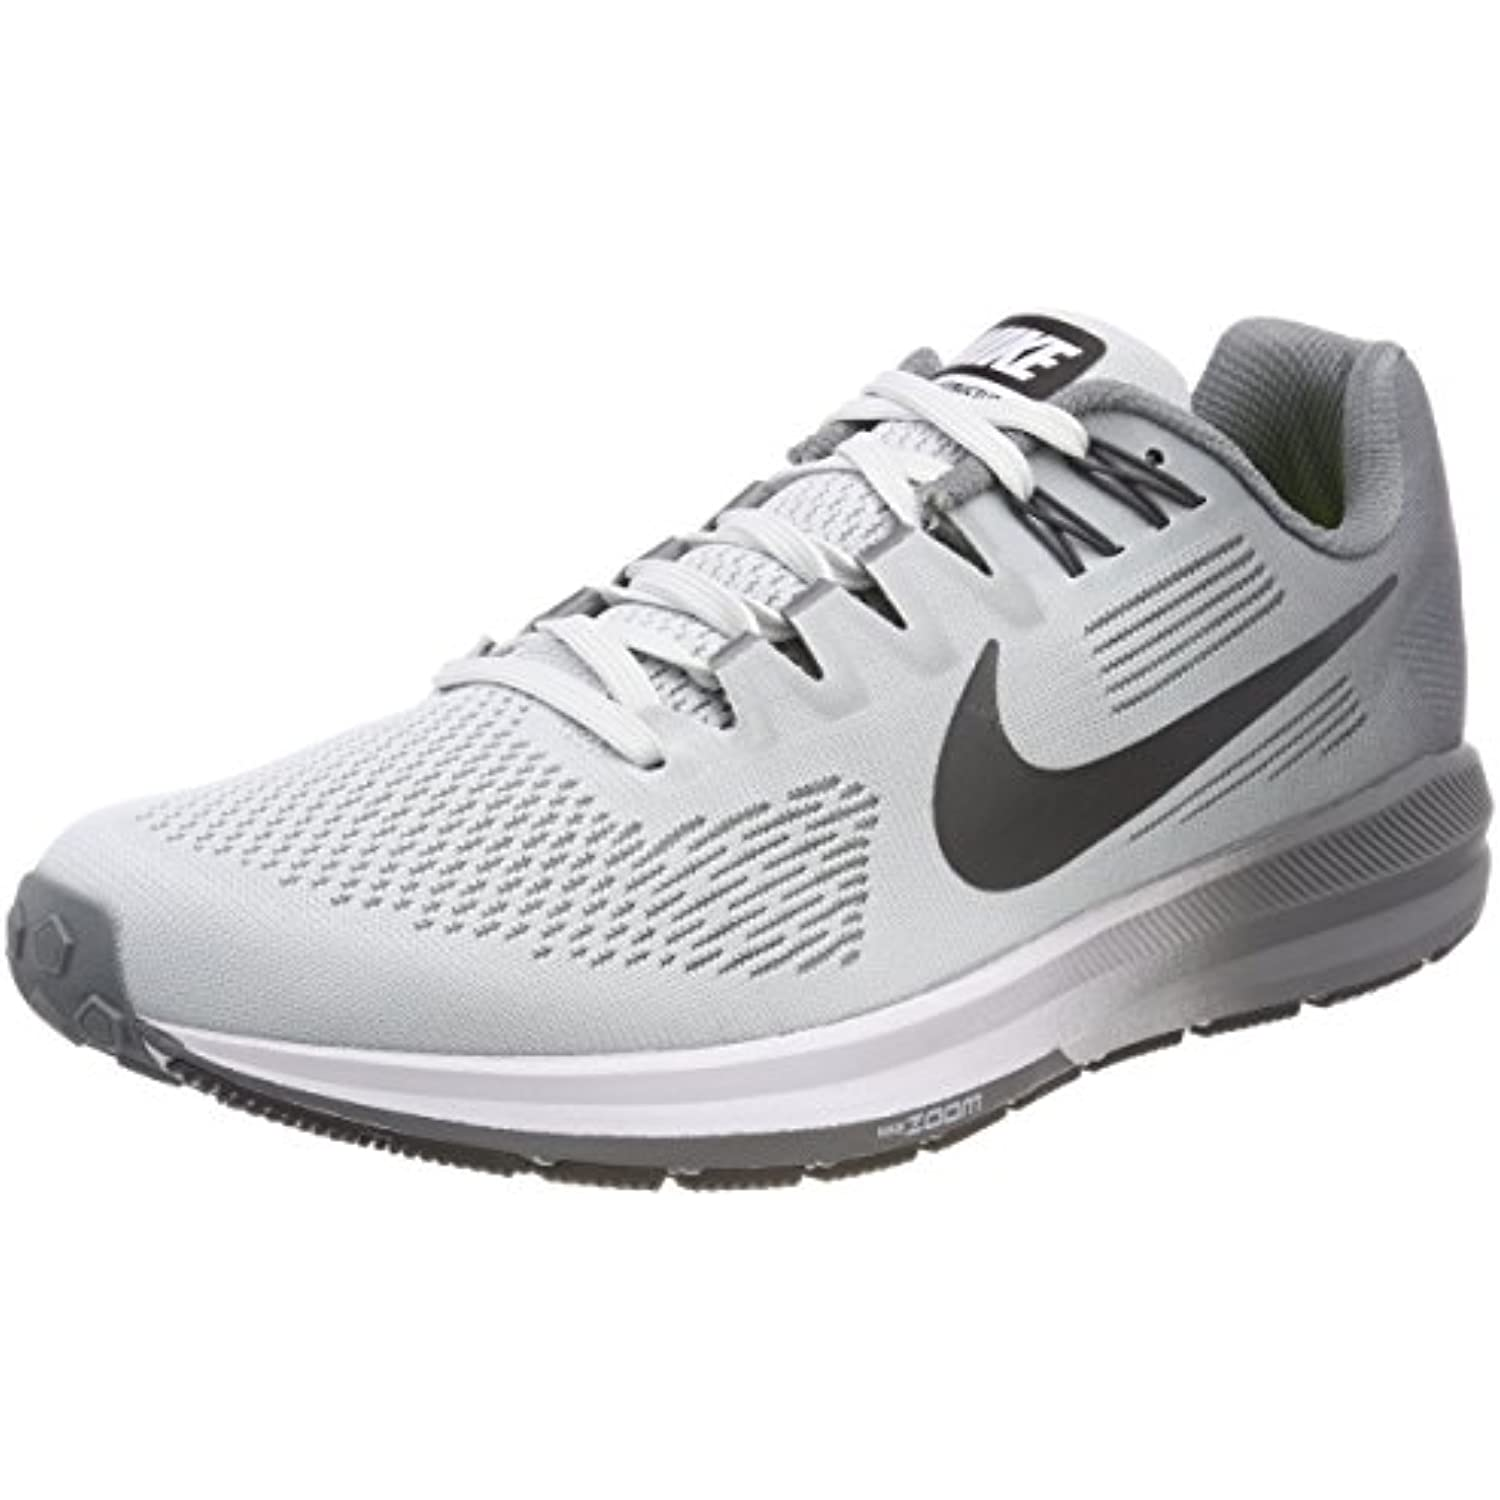 NIKE Air Zoom Structure Homme 21, Sneakers Basses Homme Structure - B0767M1KX2 - febd7f